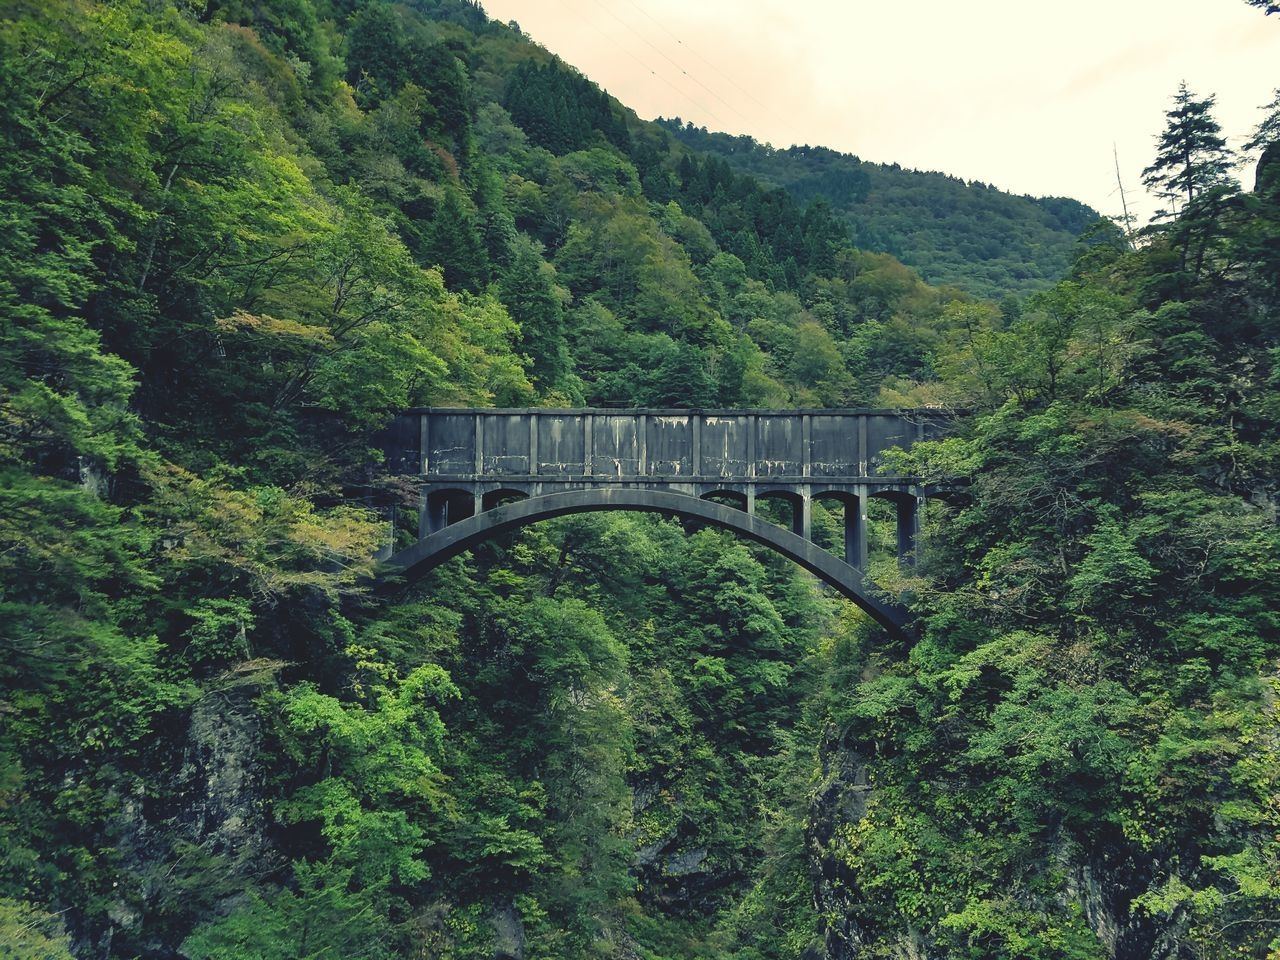 bridge - man made structure, tree, connection, built structure, transportation, green color, growth, architecture, nature, lush foliage, forest, rail transportation, no people, mountain, outdoors, day, plant, covered bridge, train - vehicle, scenics, beauty in nature, sky, steam train